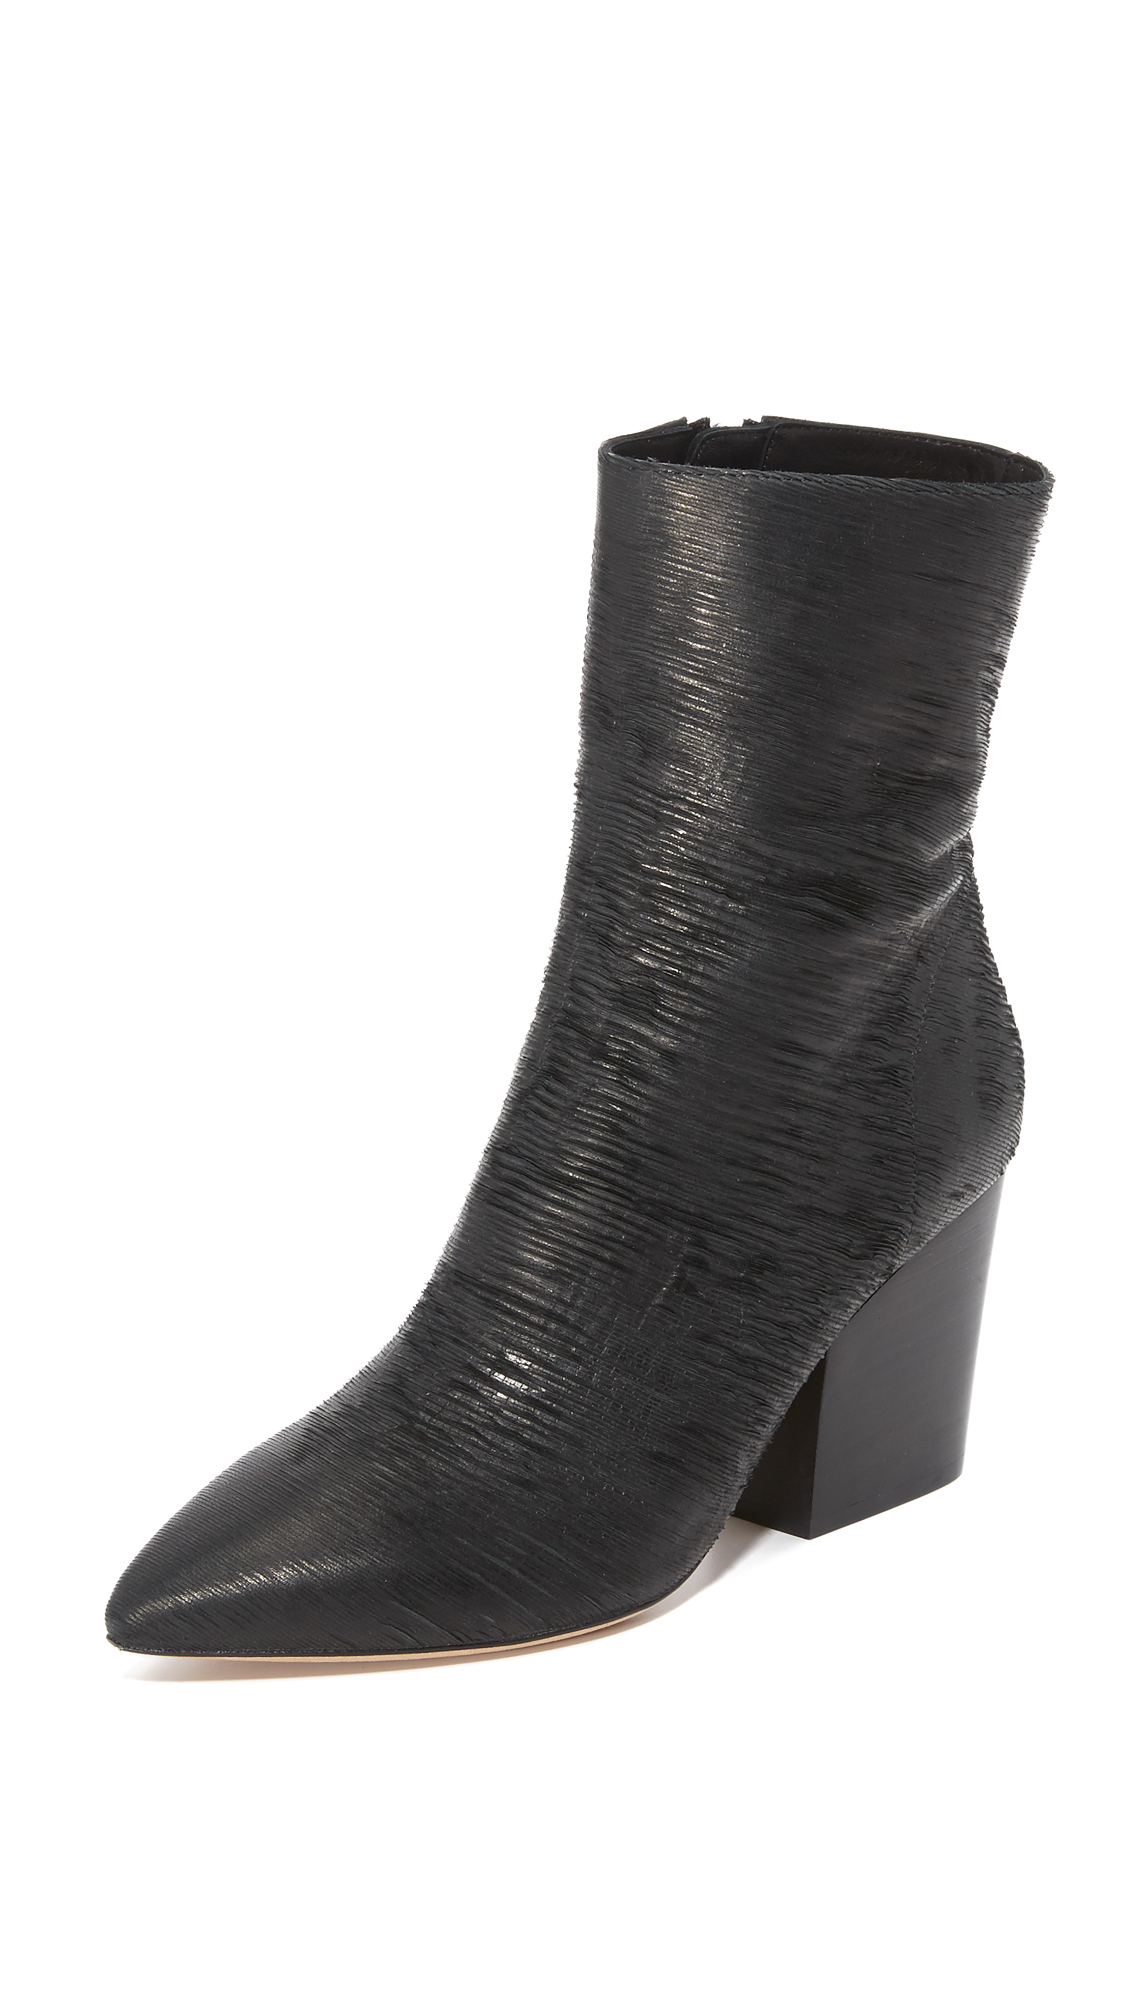 Iro Ladila Booties - Black